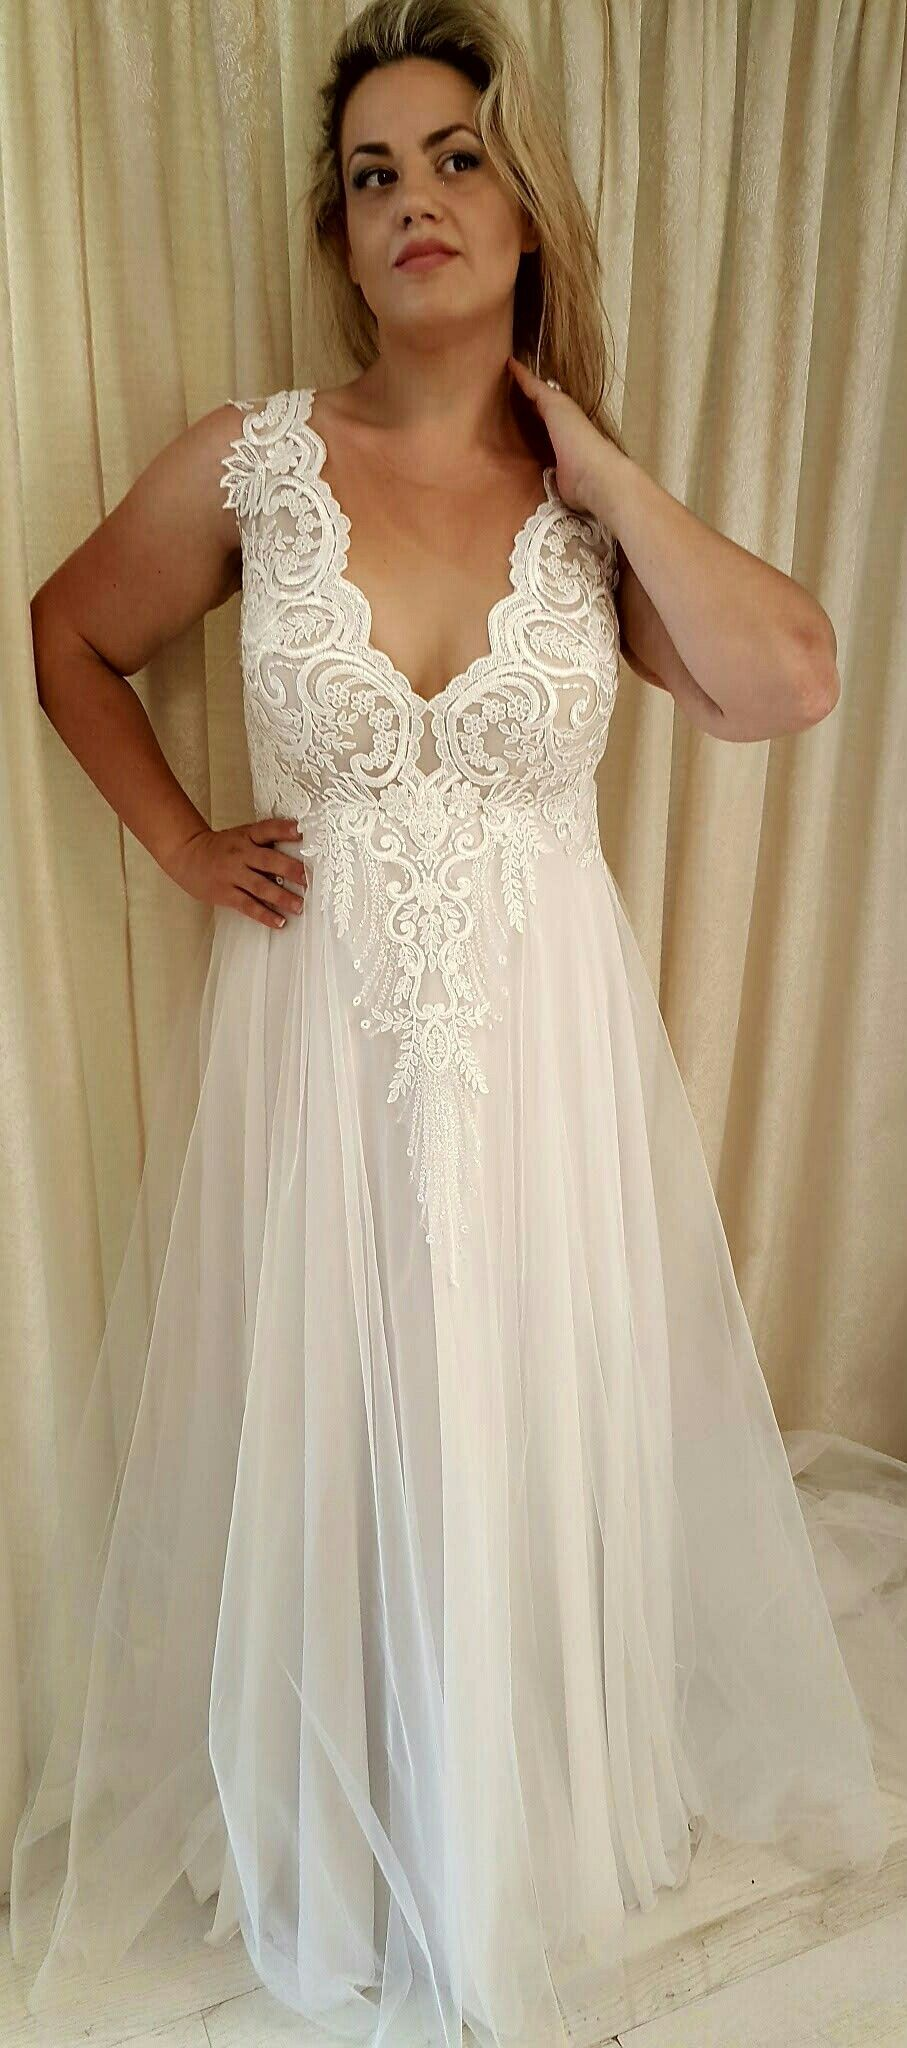 e34fc0aae465 Breath taking plus size wedding dress from Studio Levana 2018 curvy  collection. Tracie curvy wedding gown with a shimmering lace top and a  tulle skirt